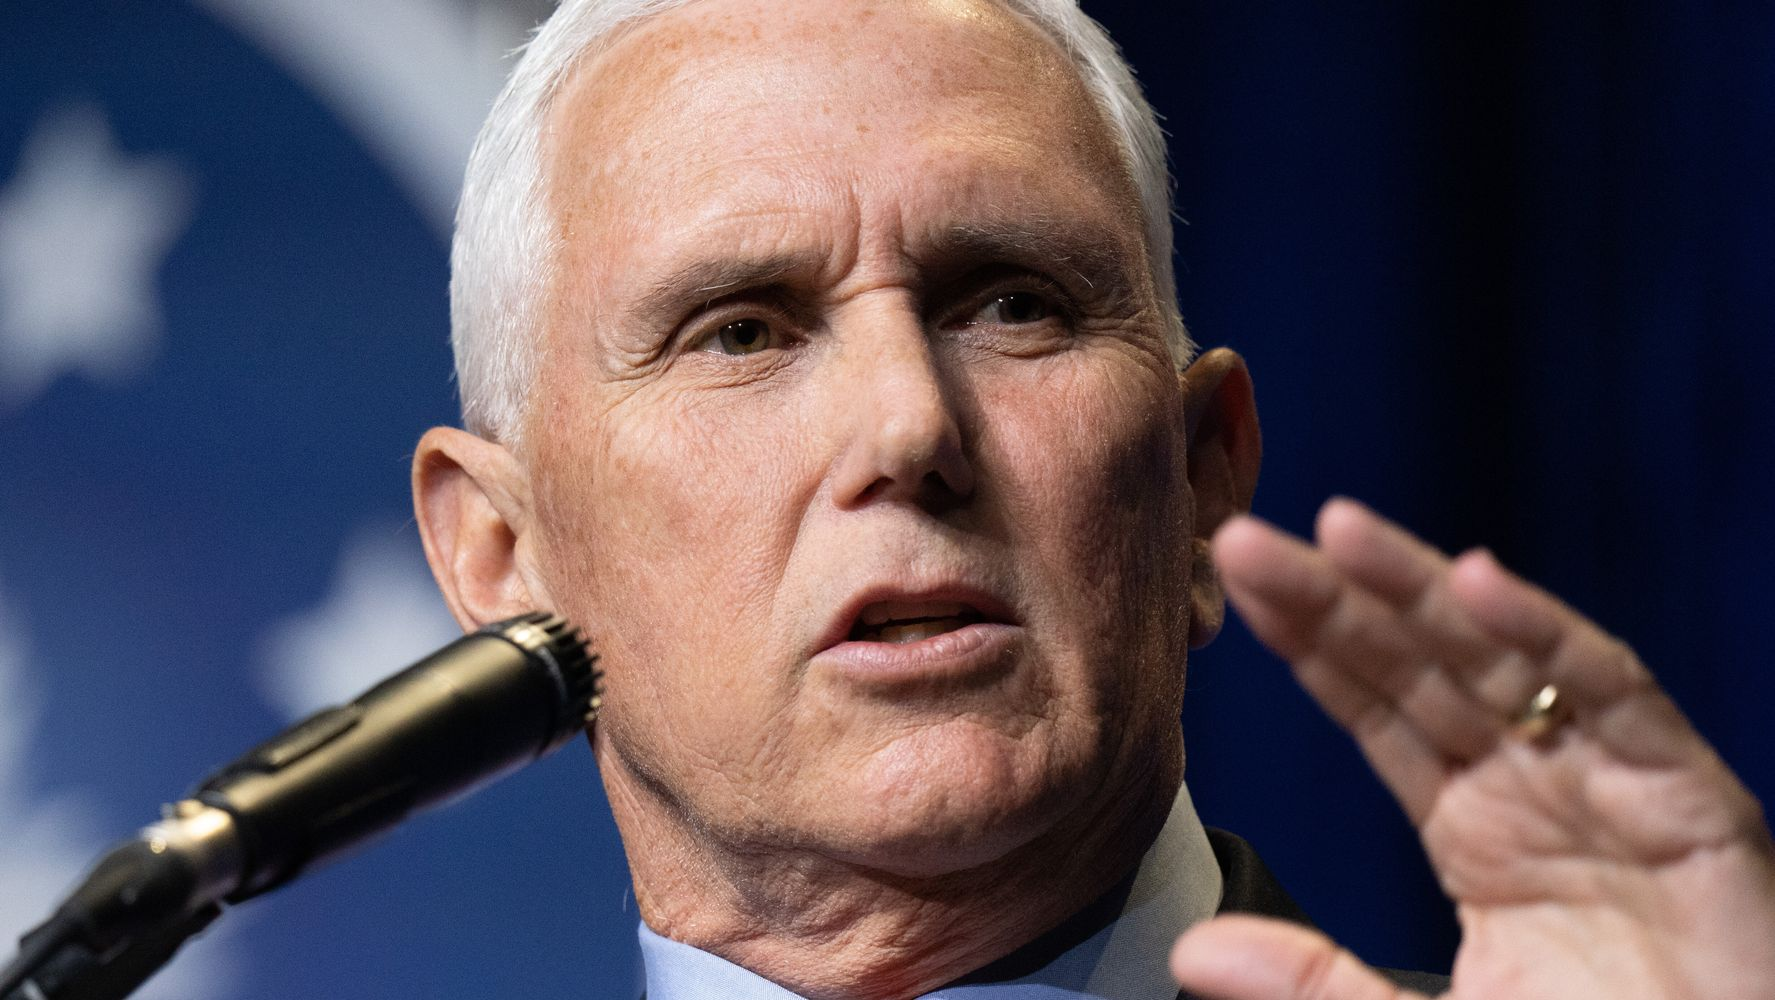 Pence rejected the secret service plan to leave the Capitol for fear of an interruption of the electoral voting duty